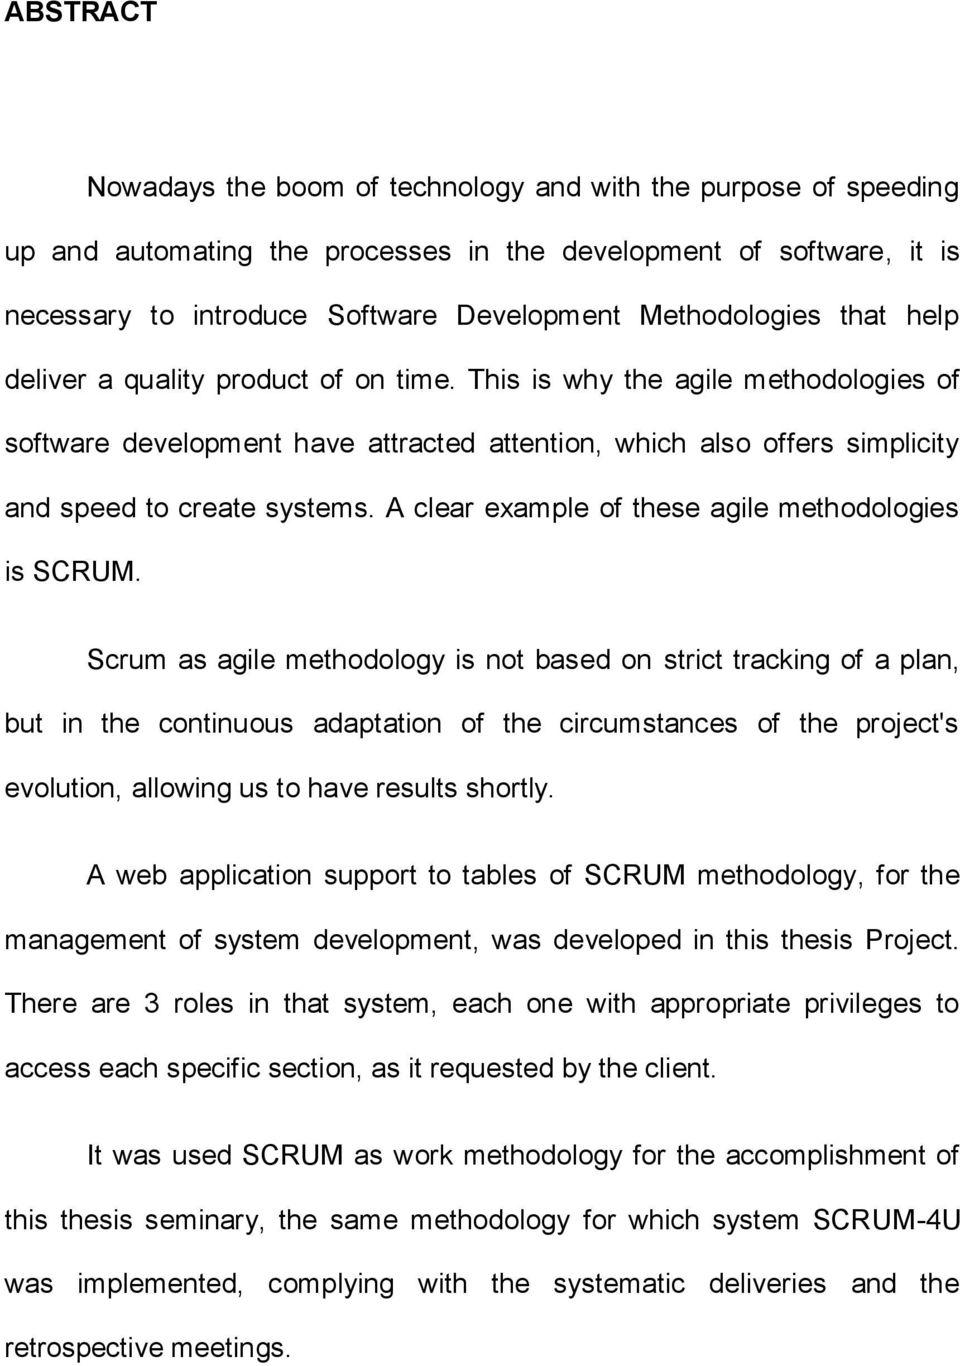 This is why the agile methodologies of software development have attracted attention, which also offers simplicity and speed to create systems. A clear example of these agile methodologies is SCRUM.